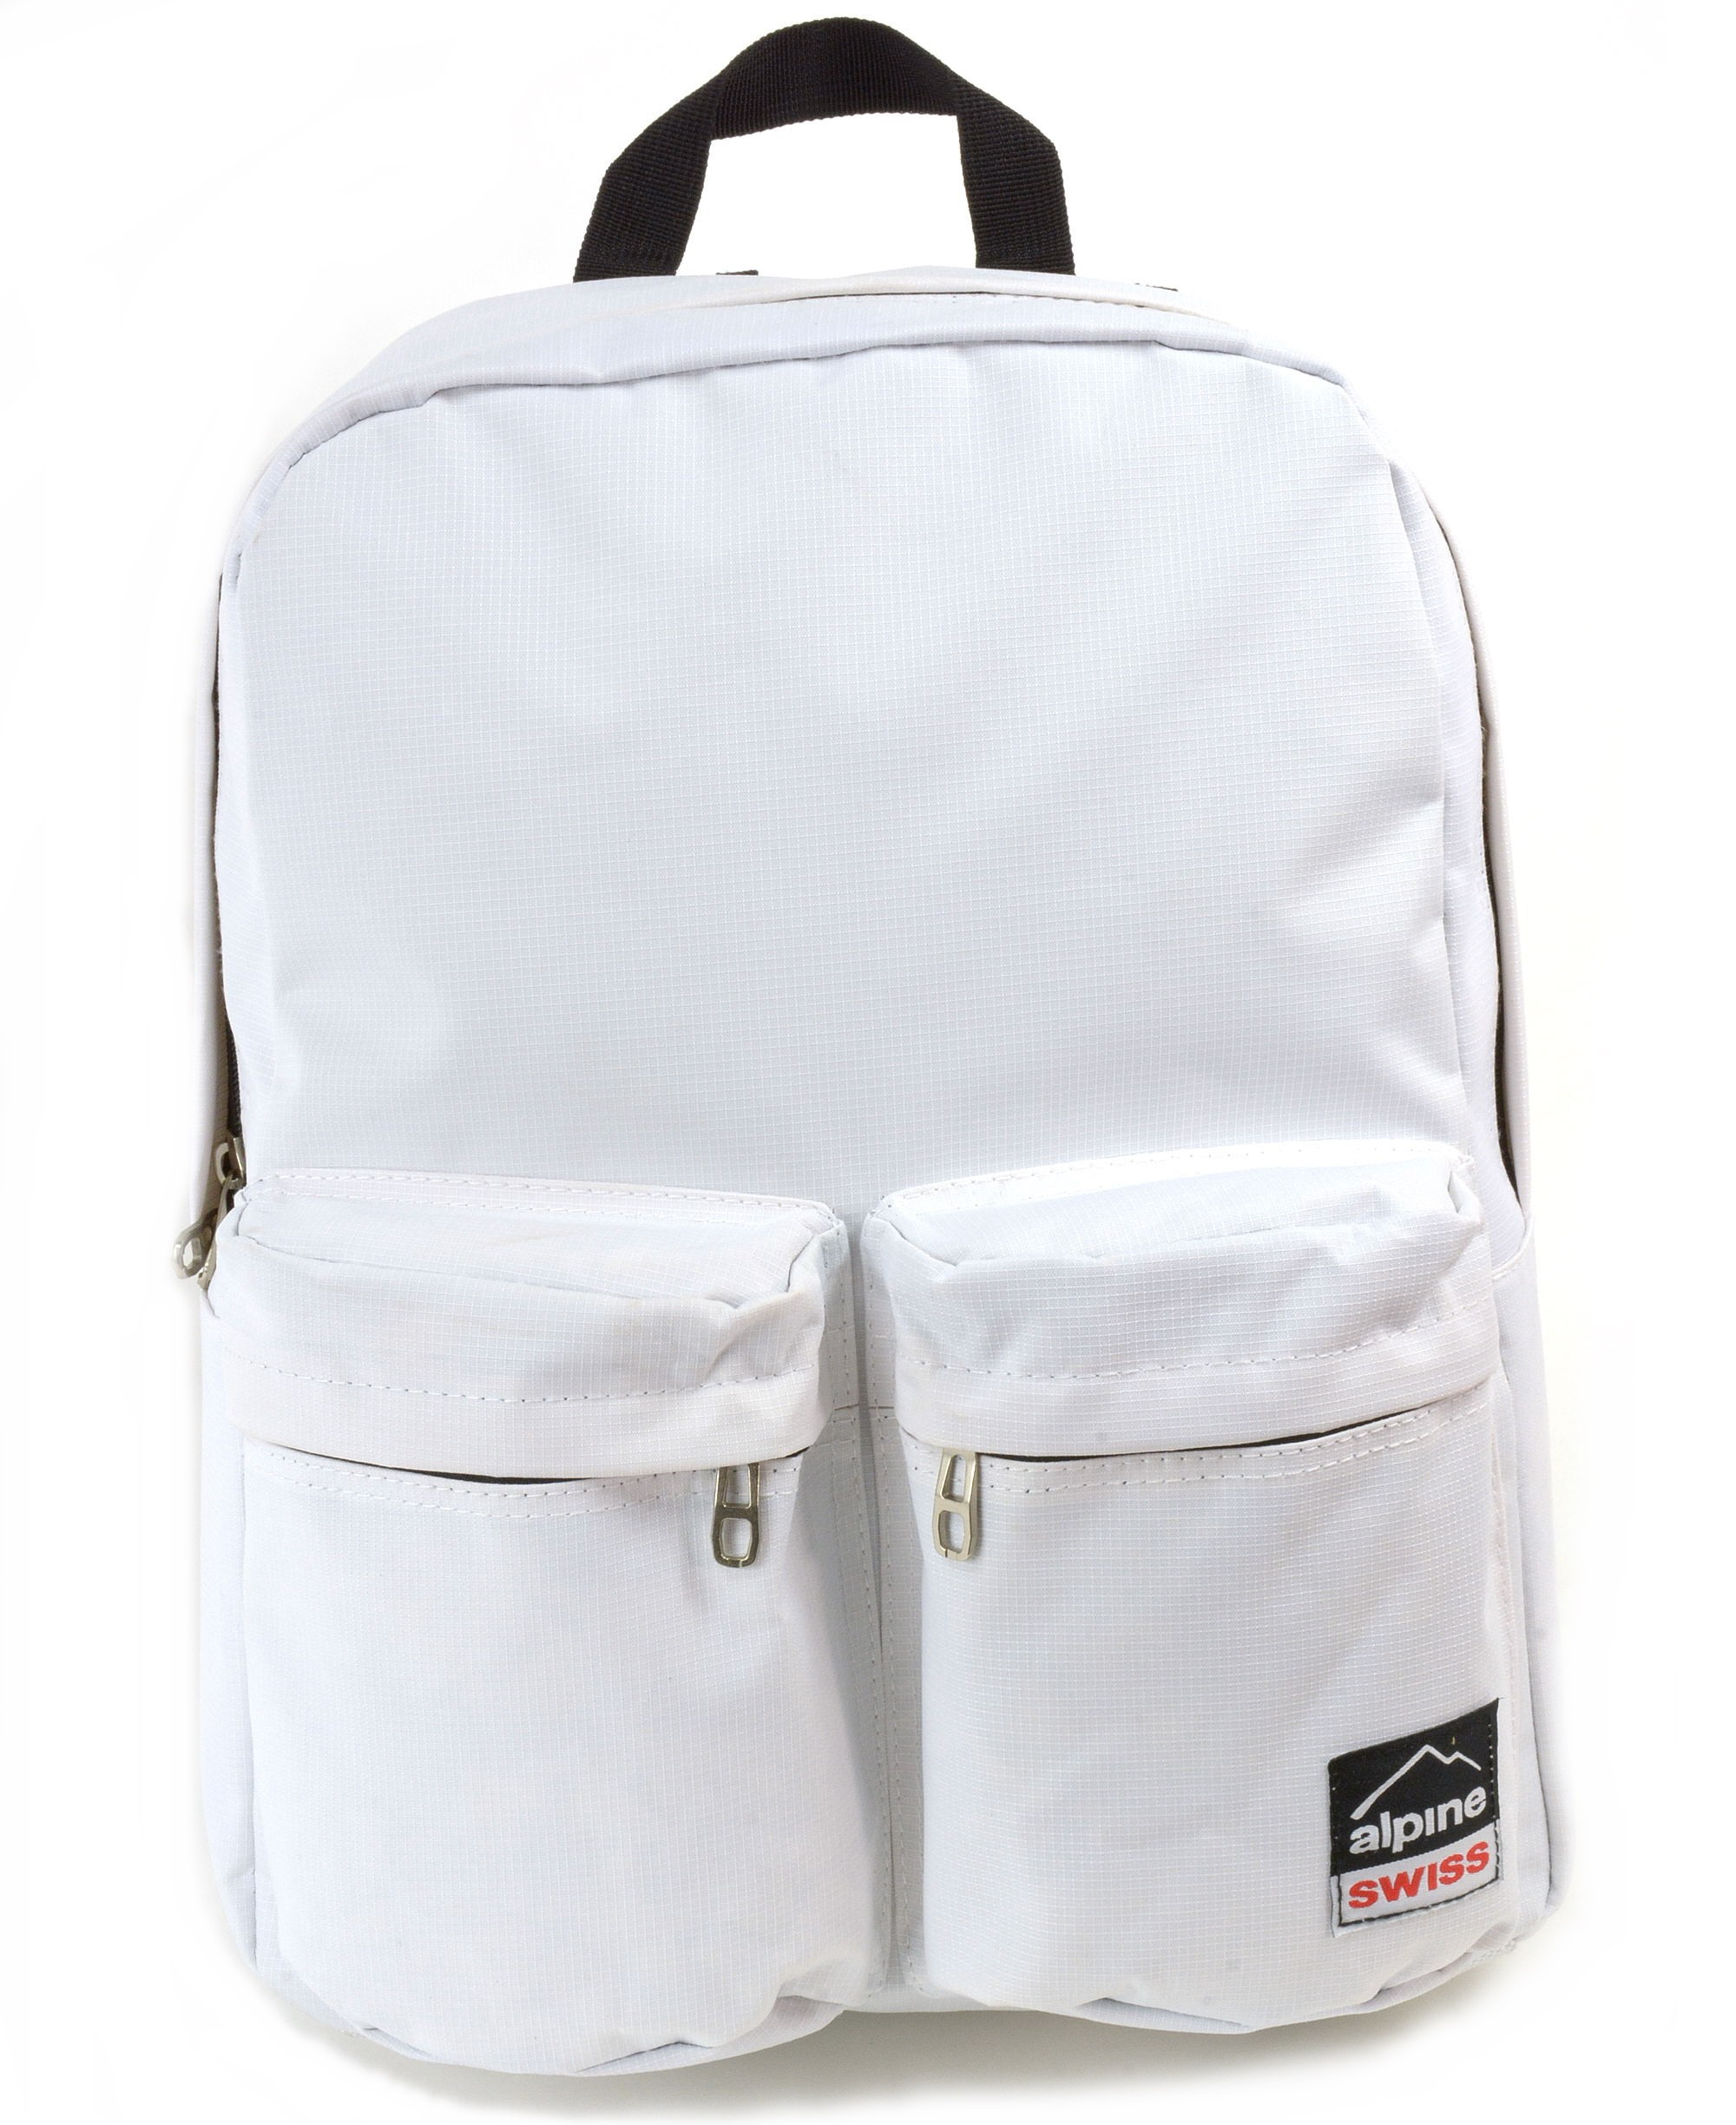 Alpine Swiss Major Back Pack Bookbag School Bag Daypack 1 Year ...